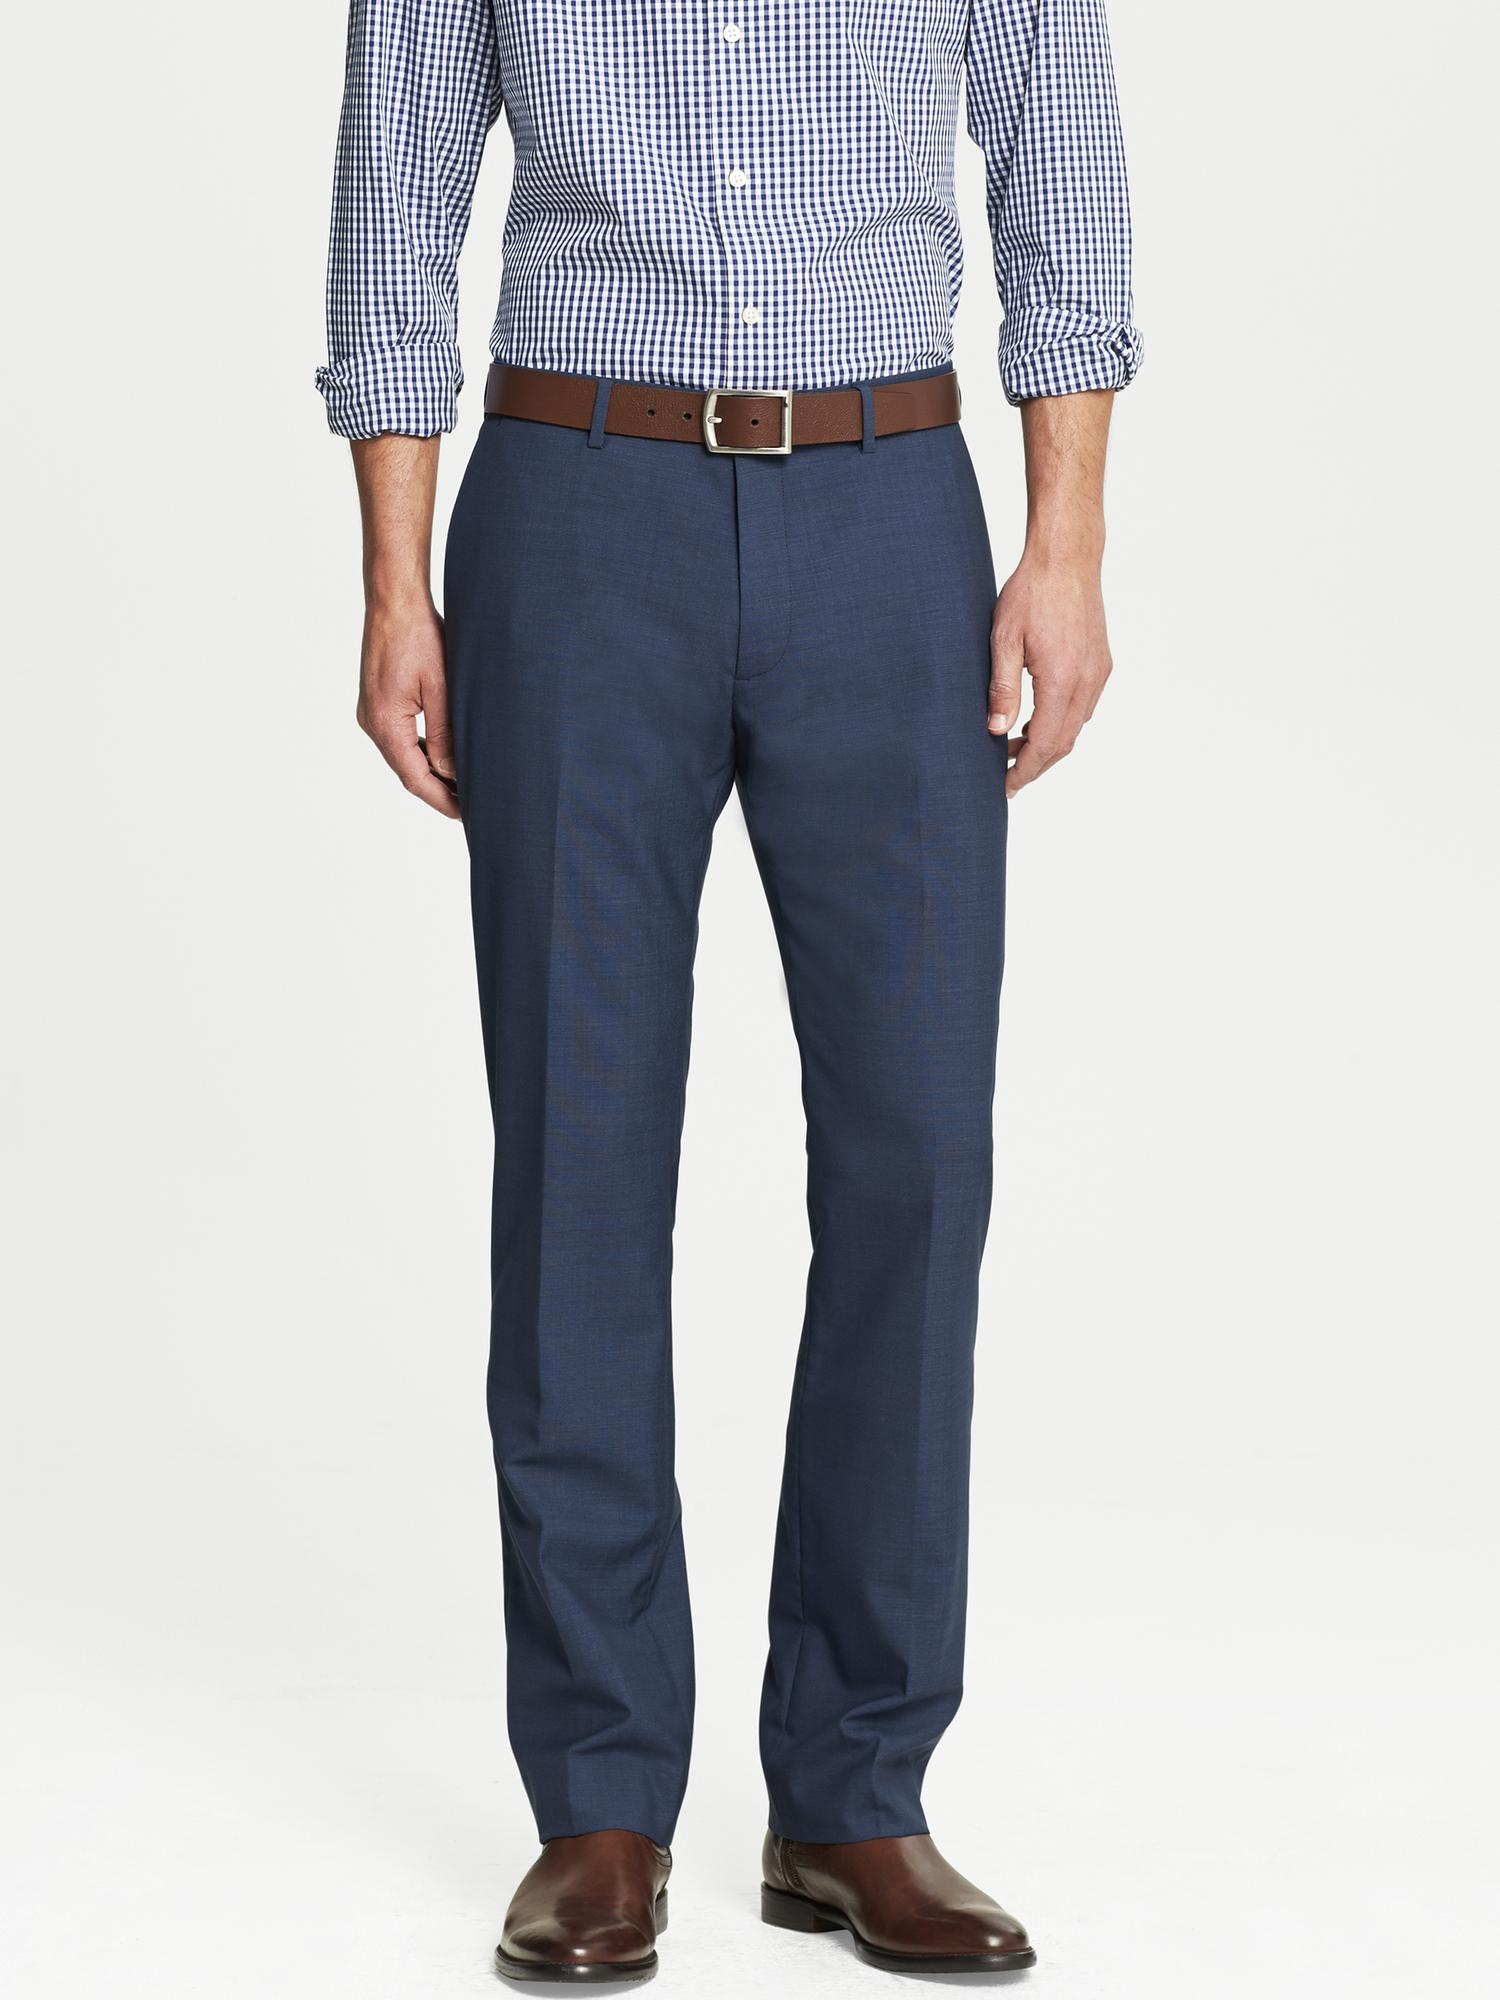 Banana Republic Womens Dress Shirts